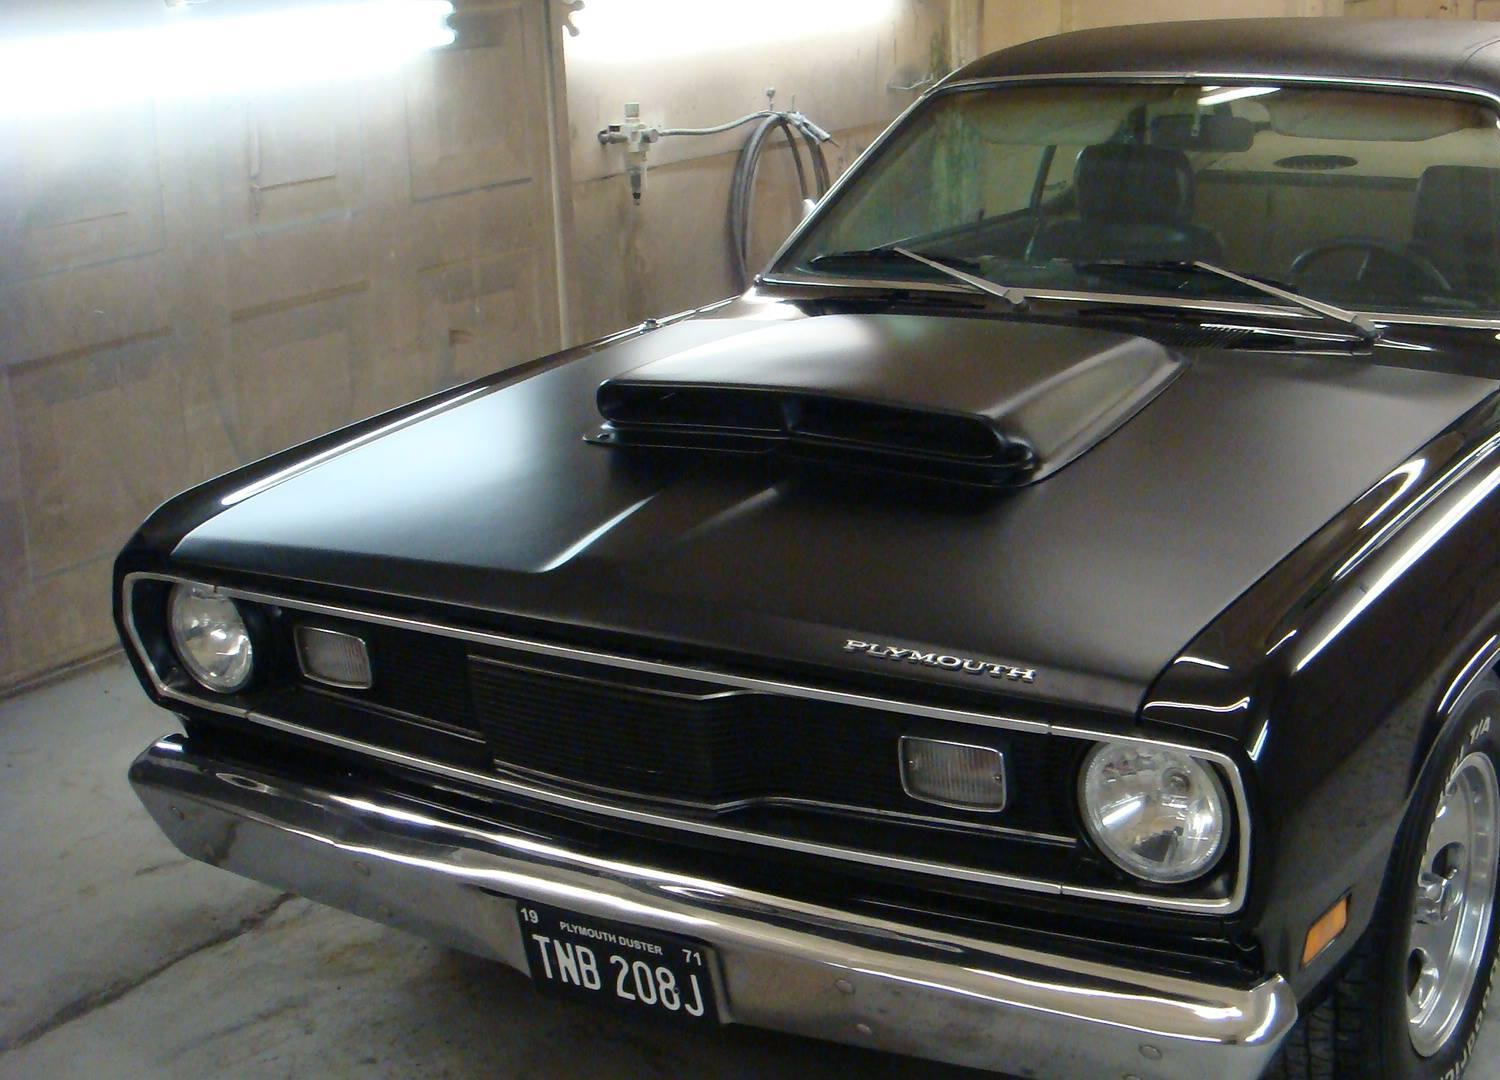 1970 Plymouth Duster|Plymouth Duster|Plymouth|Mopar UK|Plymouth Duster restoration|Muscle car restoration|APR Bodyworks|